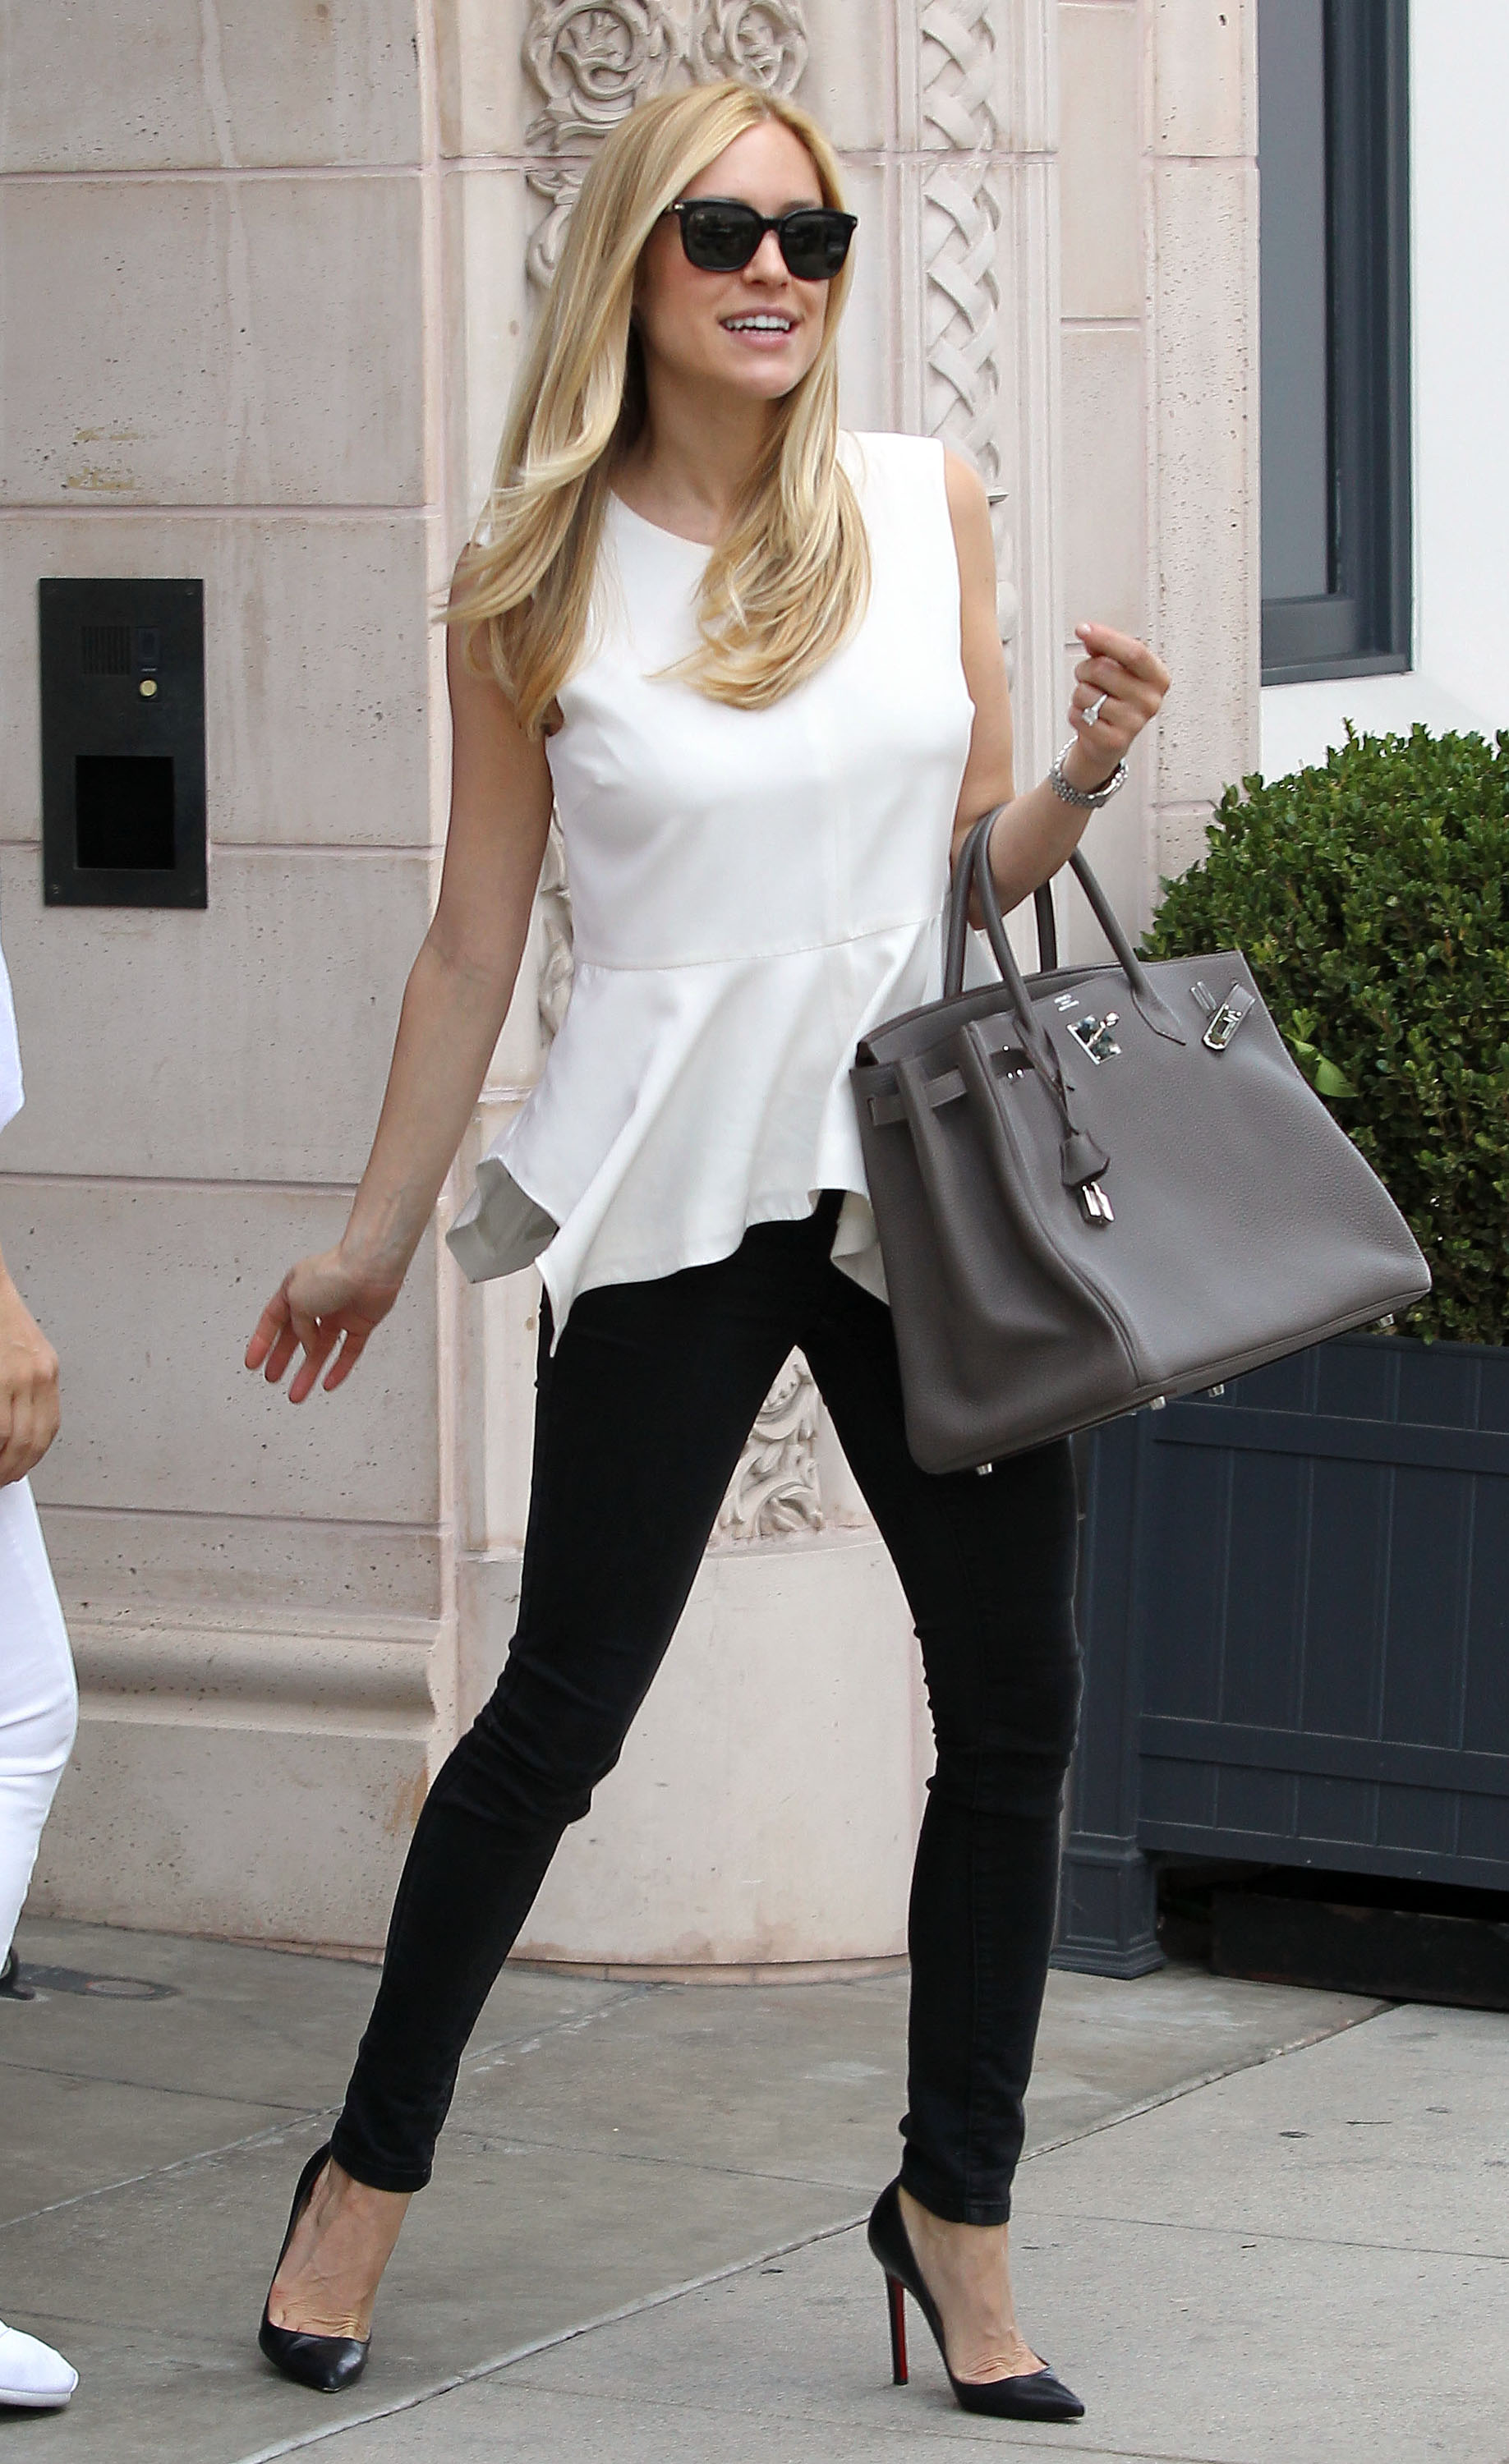 Kristin Cavallari showed off her did-she-really-just-have-a-baby?! body in a breezy peplum top and skinny black jeans out in LA.